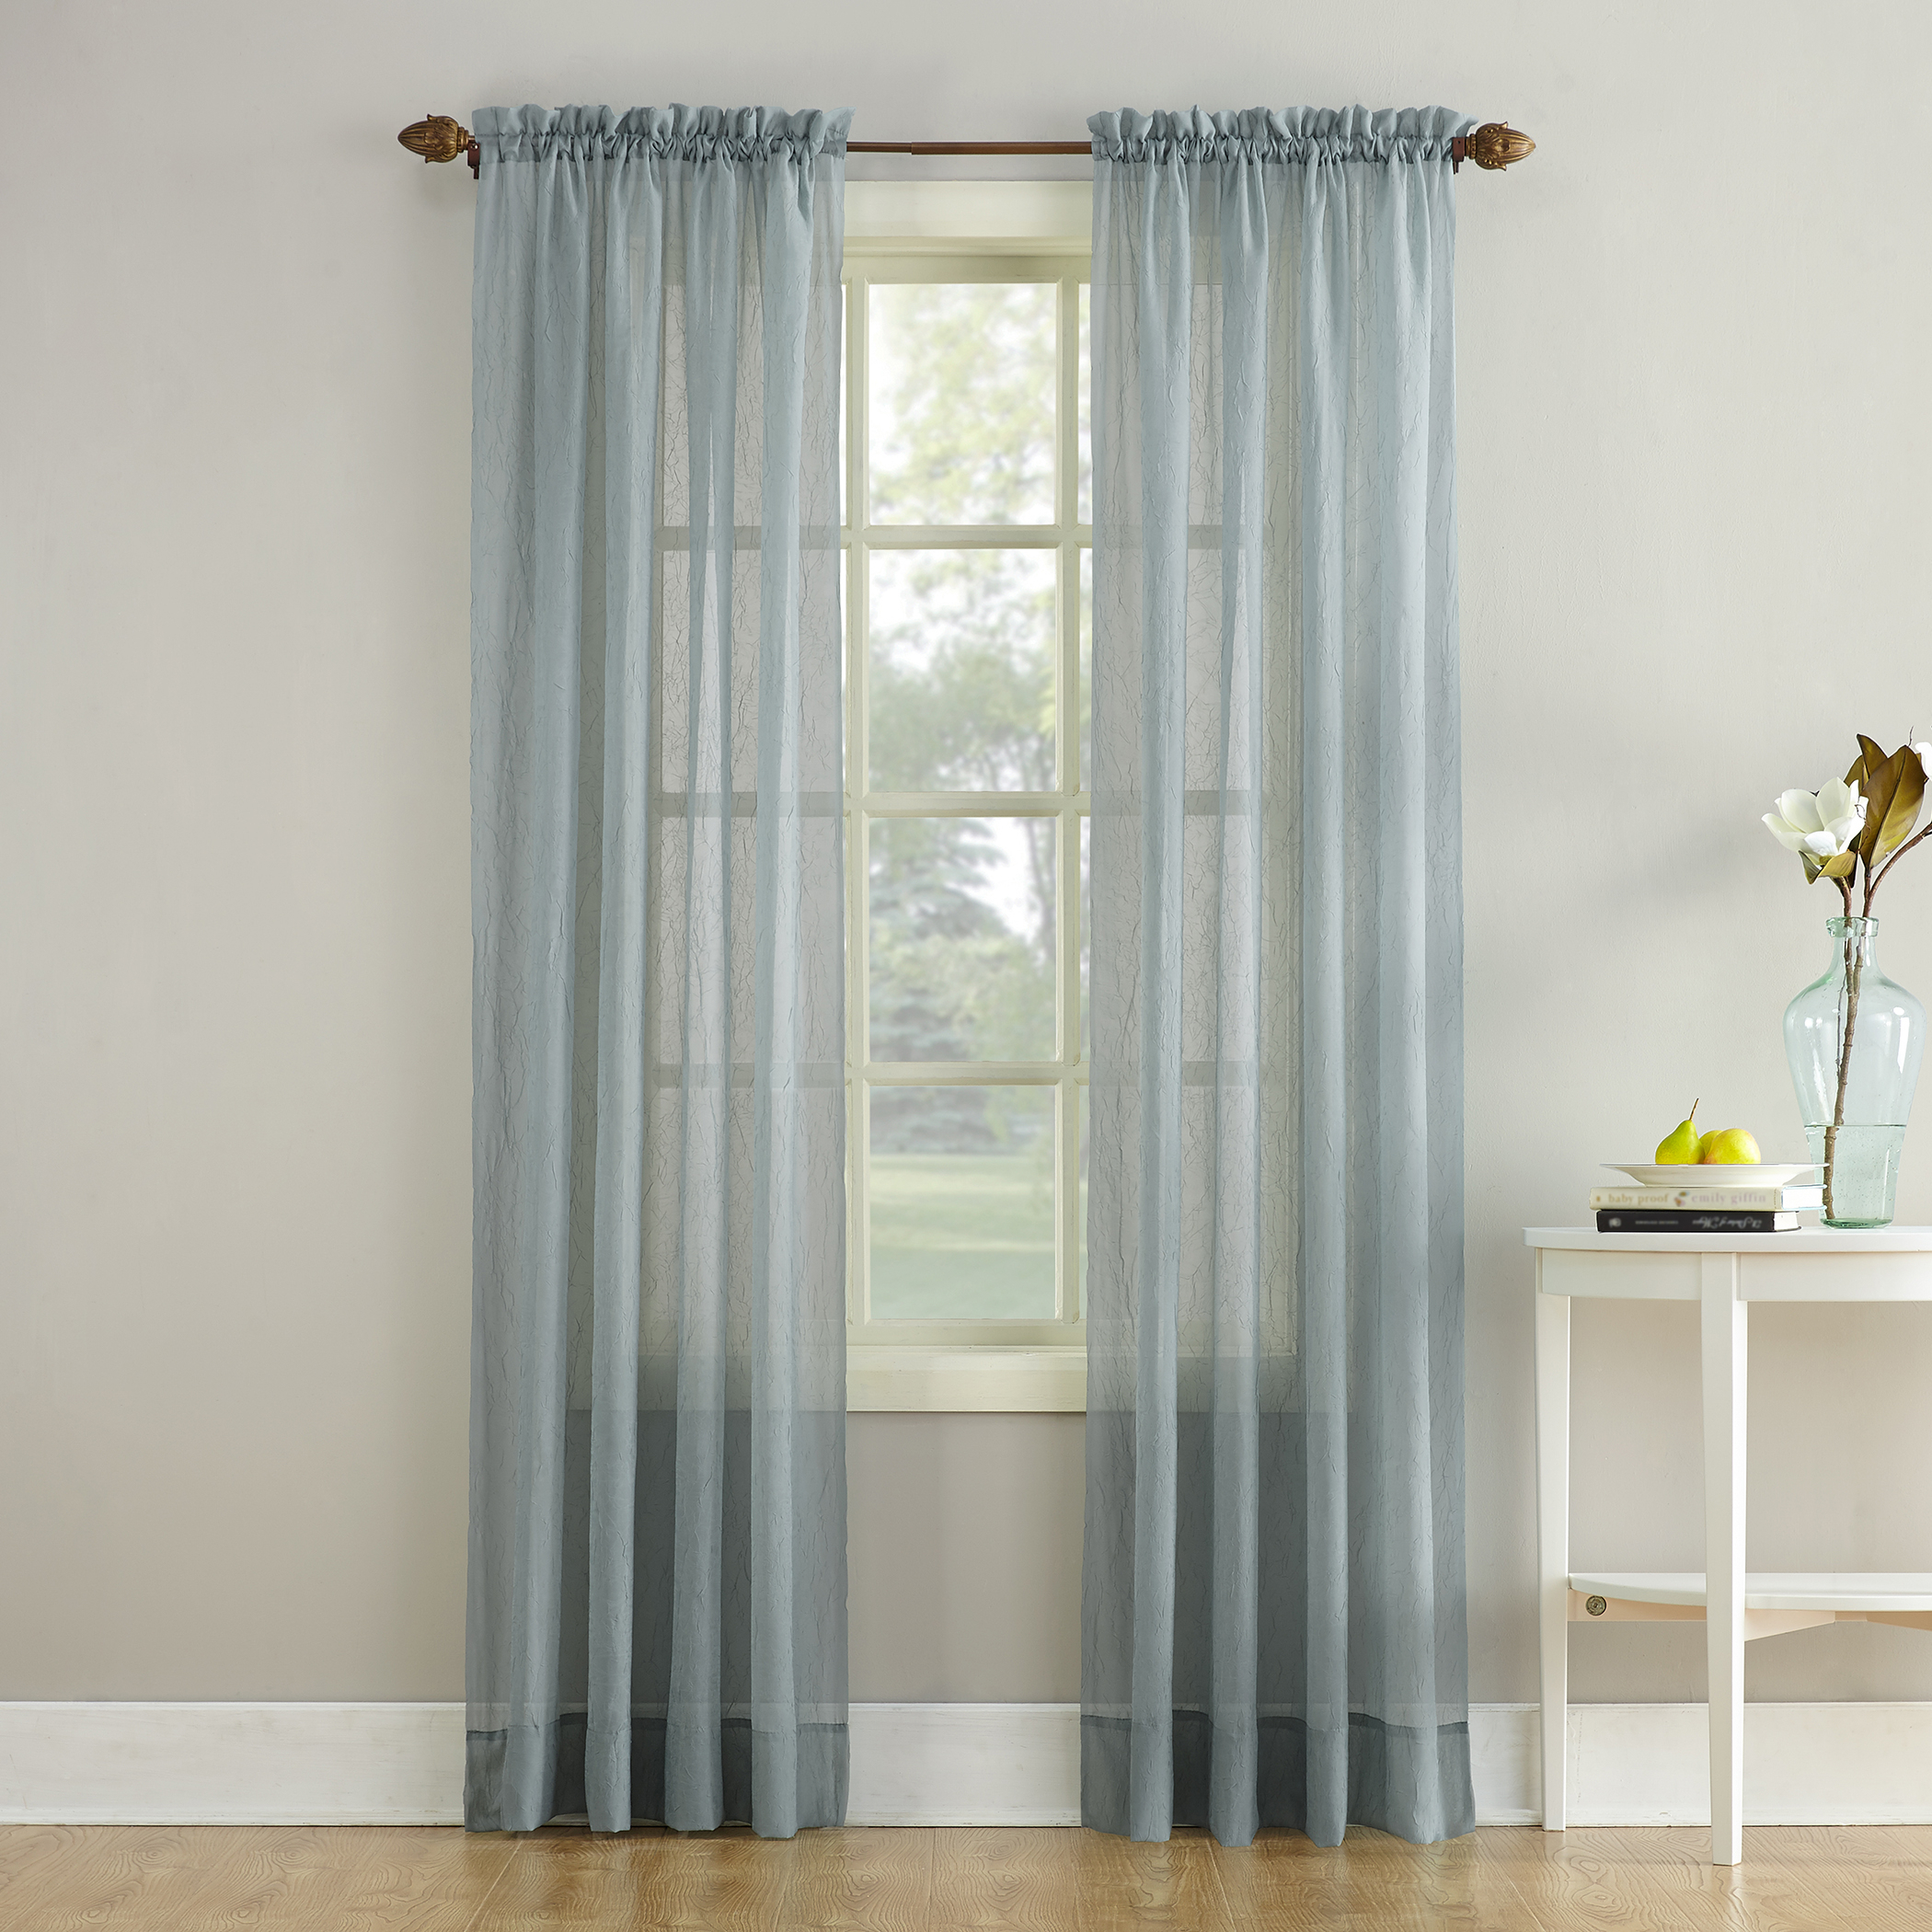 Erica Crushed Sheer Voile Rod Pocket Curtain Panel Charcoal Regarding Erica Crushed Sheer Voile Grommet Curtain Panels (View 6 of 20)